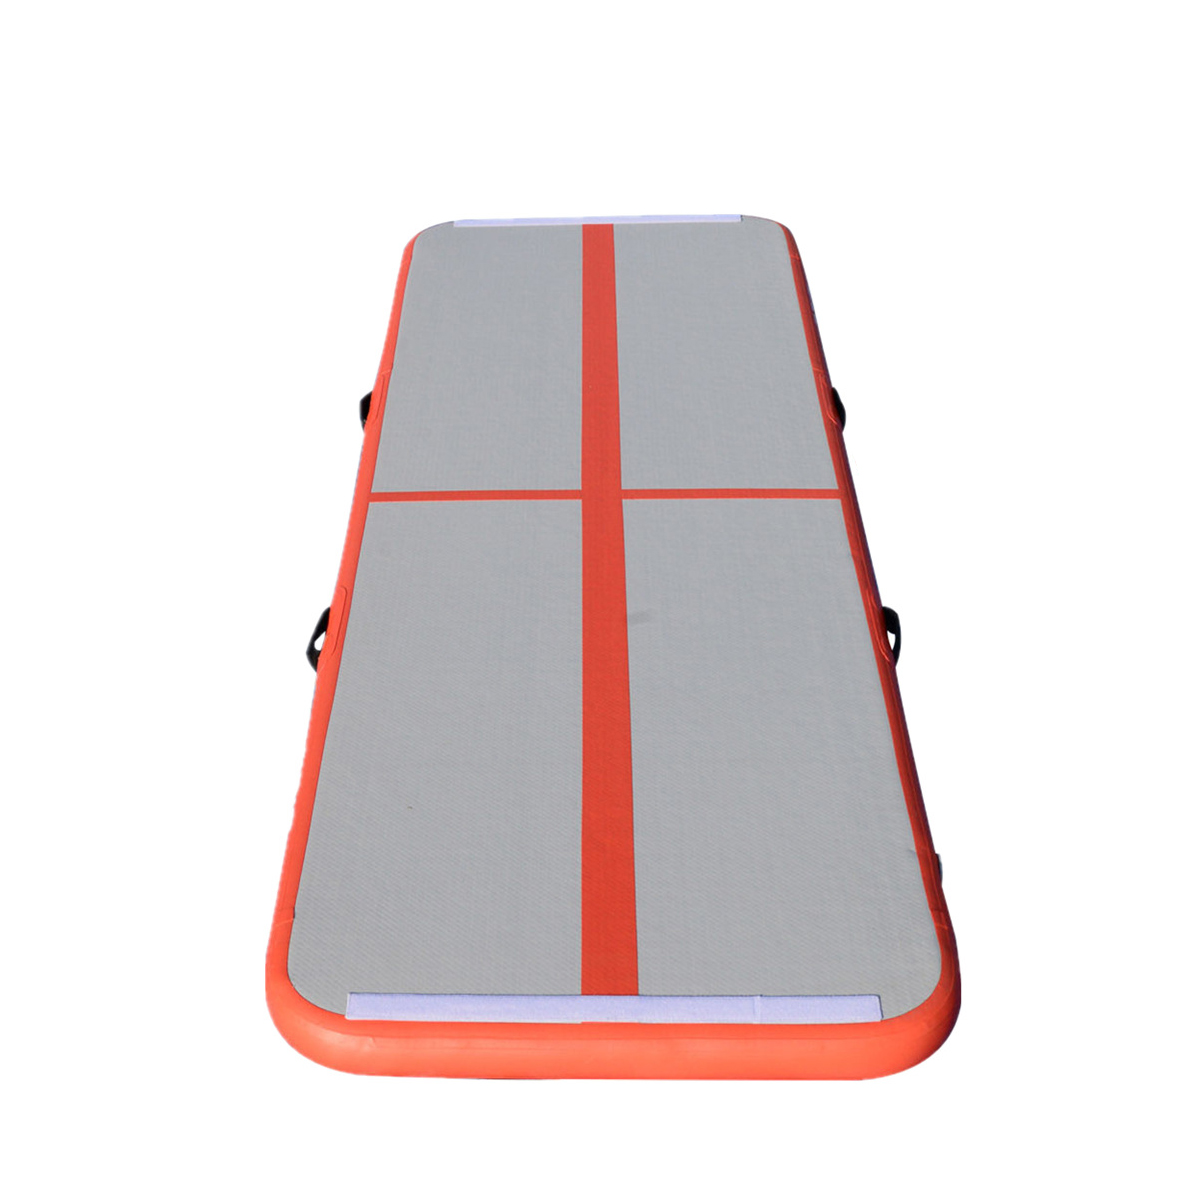 3 Meters Tumbling Mat Airtrack Air Track Floor Inflatable Gymnastics Gym Ebay